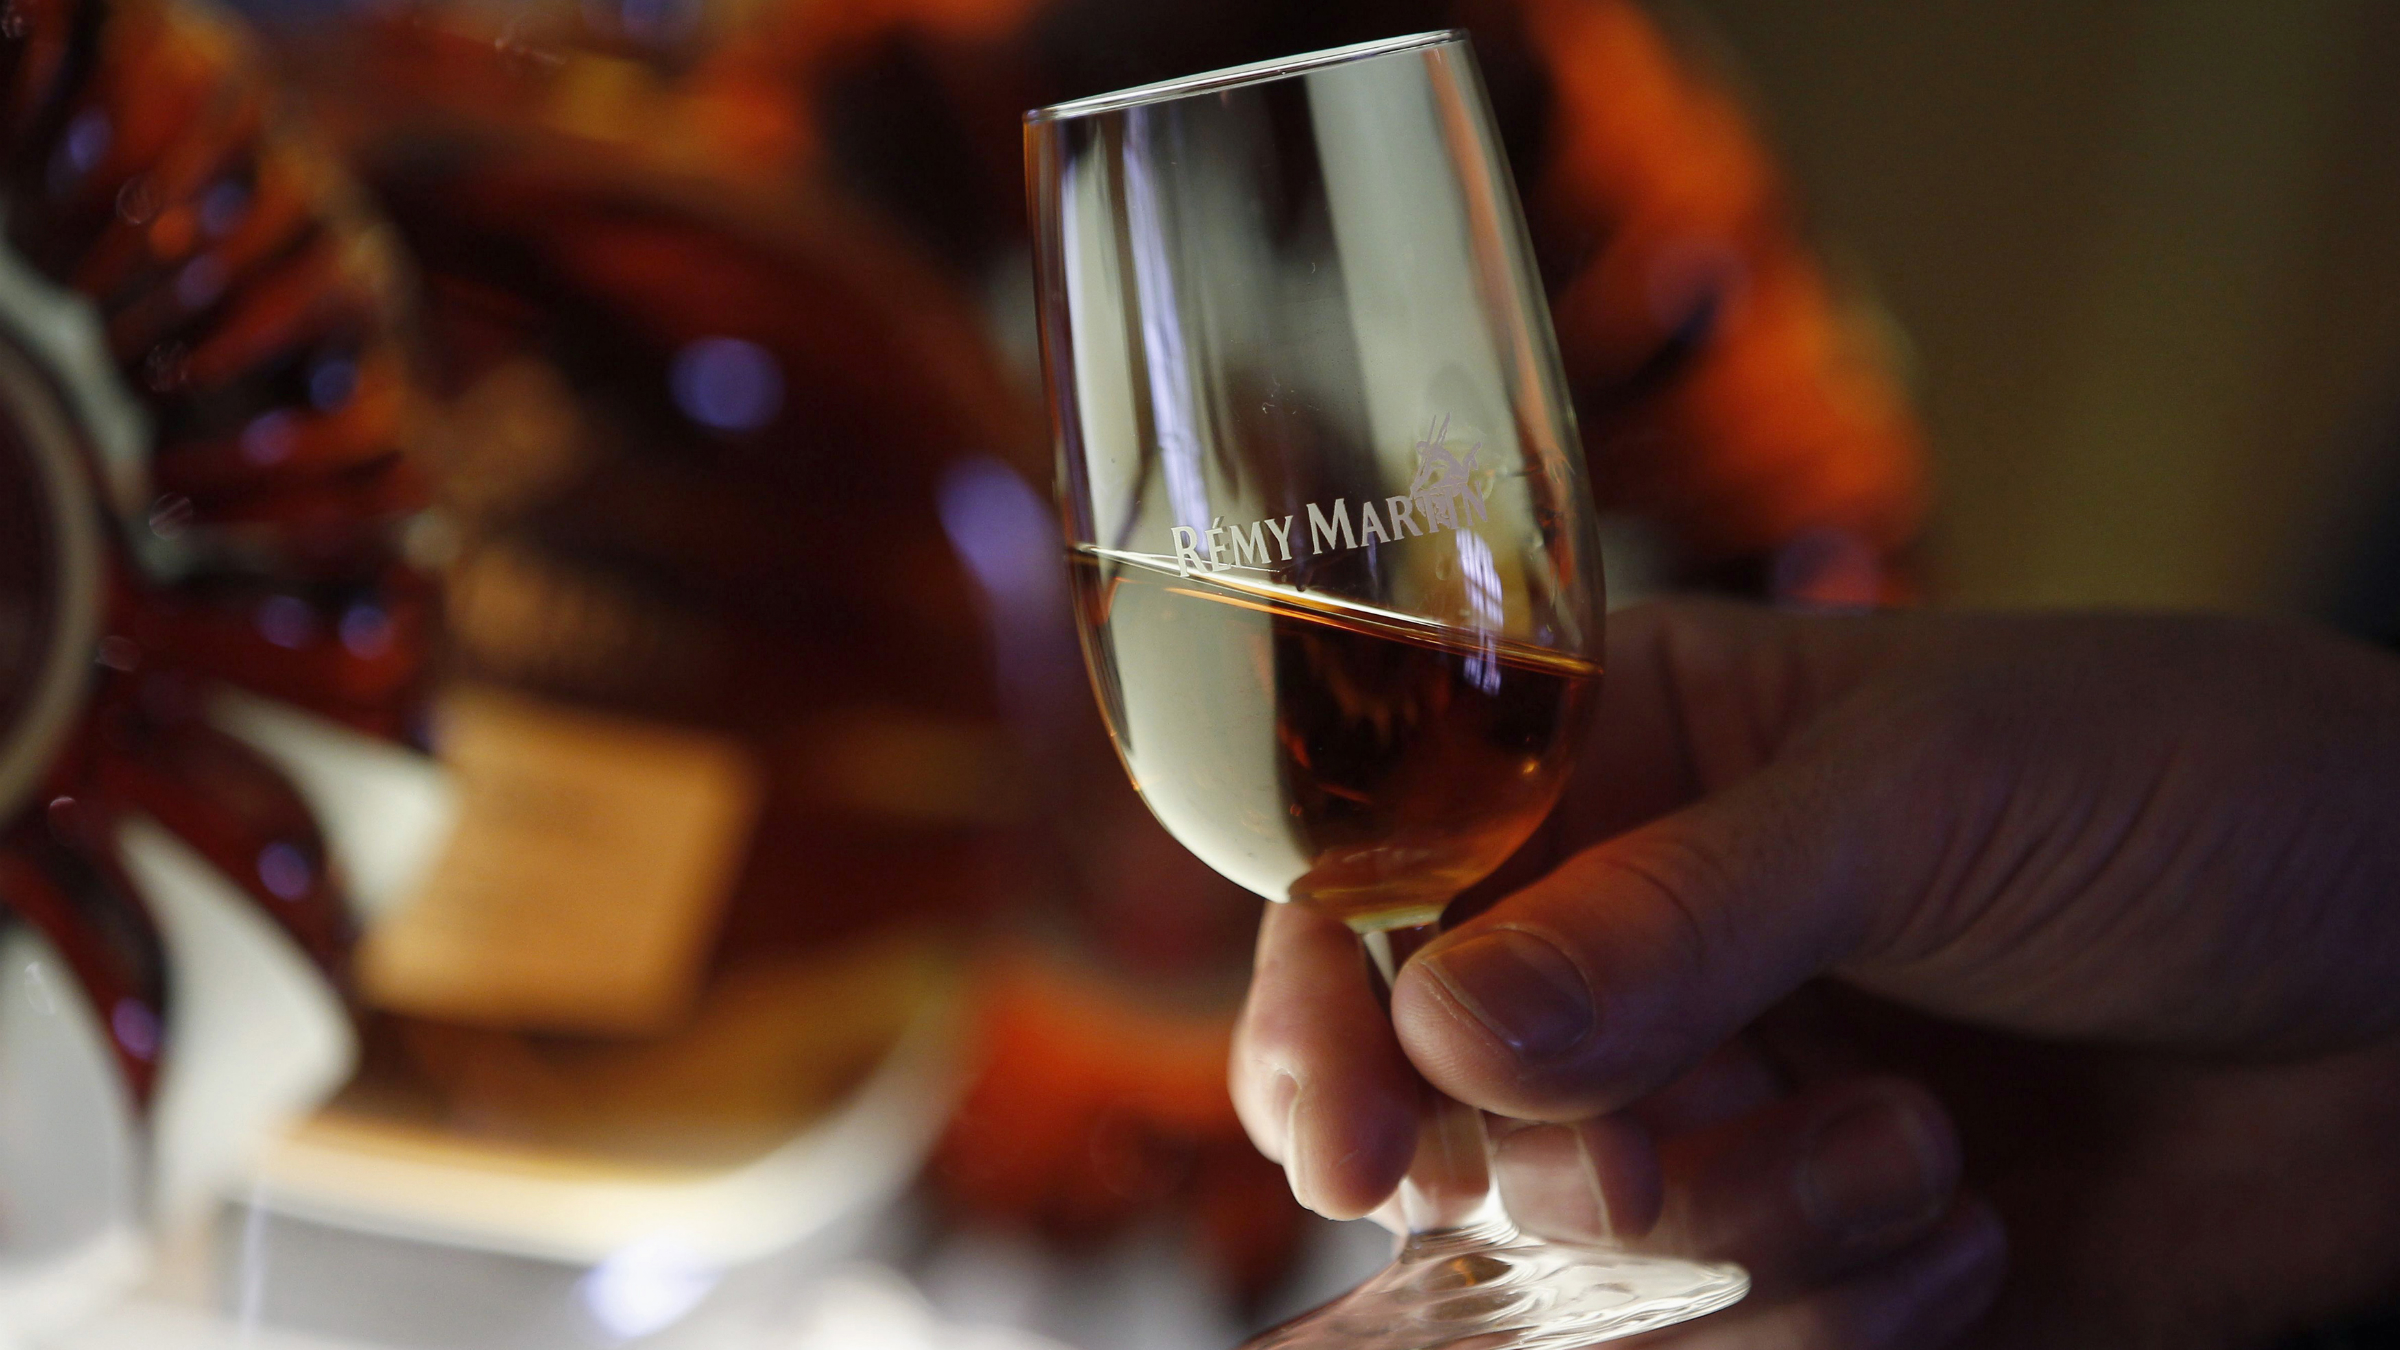 An employee holds a glass of cognac at the Remy Martin distillery in Cognac, southwestern France, October 8, 2012. As overall cognac sales have recovered from the 2008/09 downturn, discerning Chinese looking for an aspirational tipple are causing a surge in shipments of Remy Martin's 2,500-euro Louis XIII cognac and other deluxe spirits. The trend is good news for Remy Martin, which is much more focused than its rivals on high-end brands, and suggests that a slowdown in China's overall economic growth rate may not dampen the country's appetite for some luxury goods, even if some sectors have sounded warnings. To match Feature COGNAC-REMY/ Picture taken October 8, 2012. REUTERS/Regis Duvignau